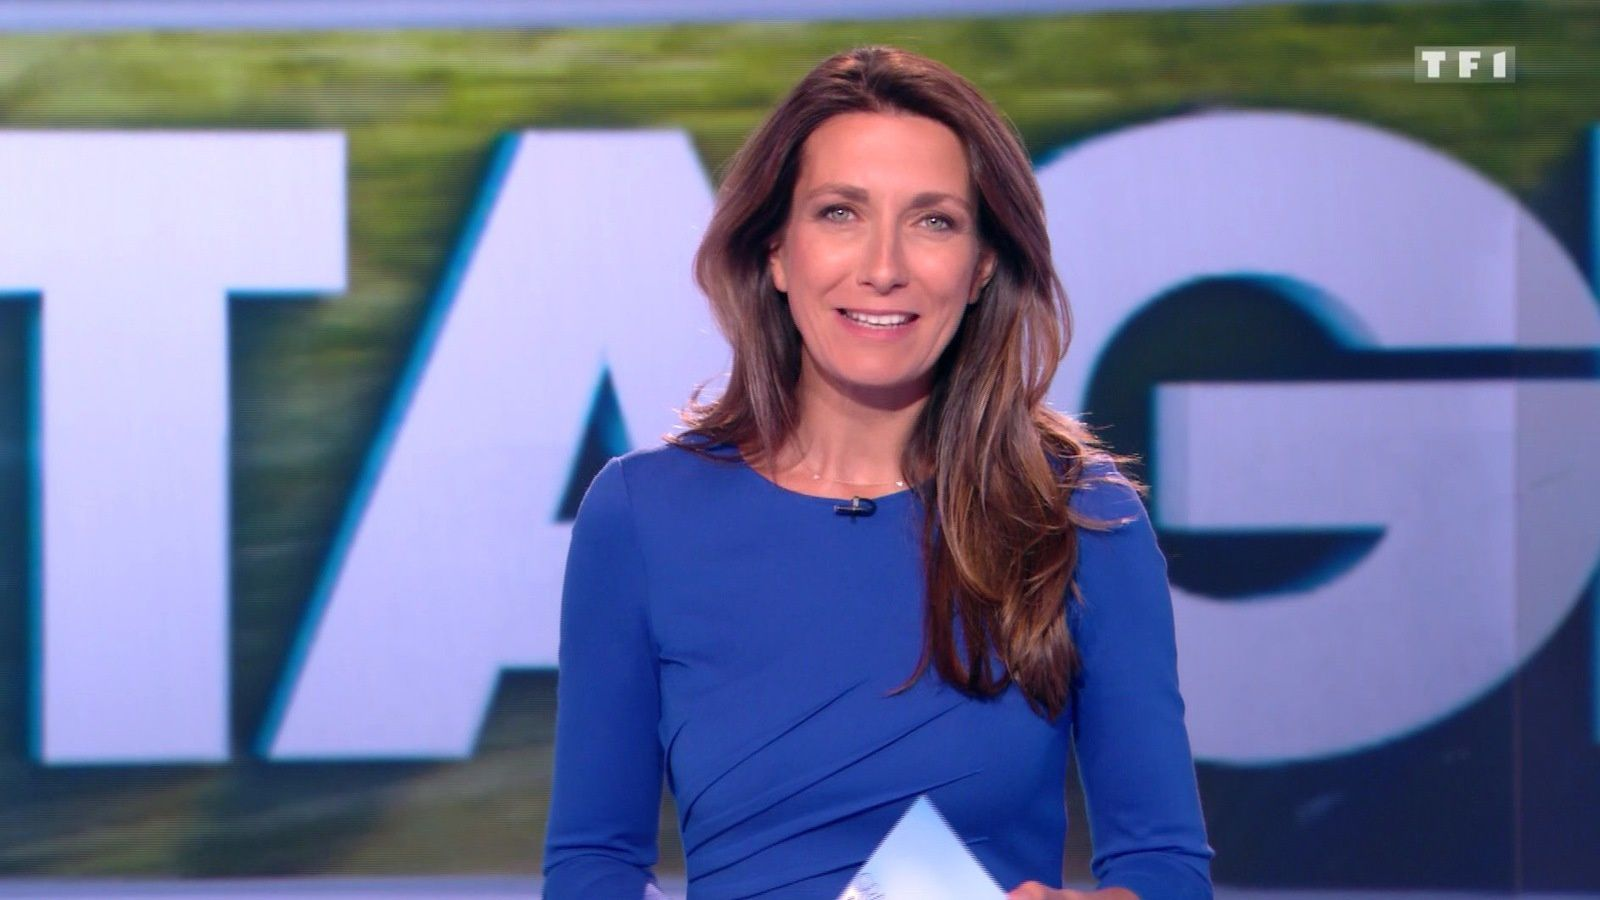 📸3 ANNE-CLAIRE COUDRAY @ACCoudray @TF1 GRANDS REPORTAGES ce midi #vuesalatele